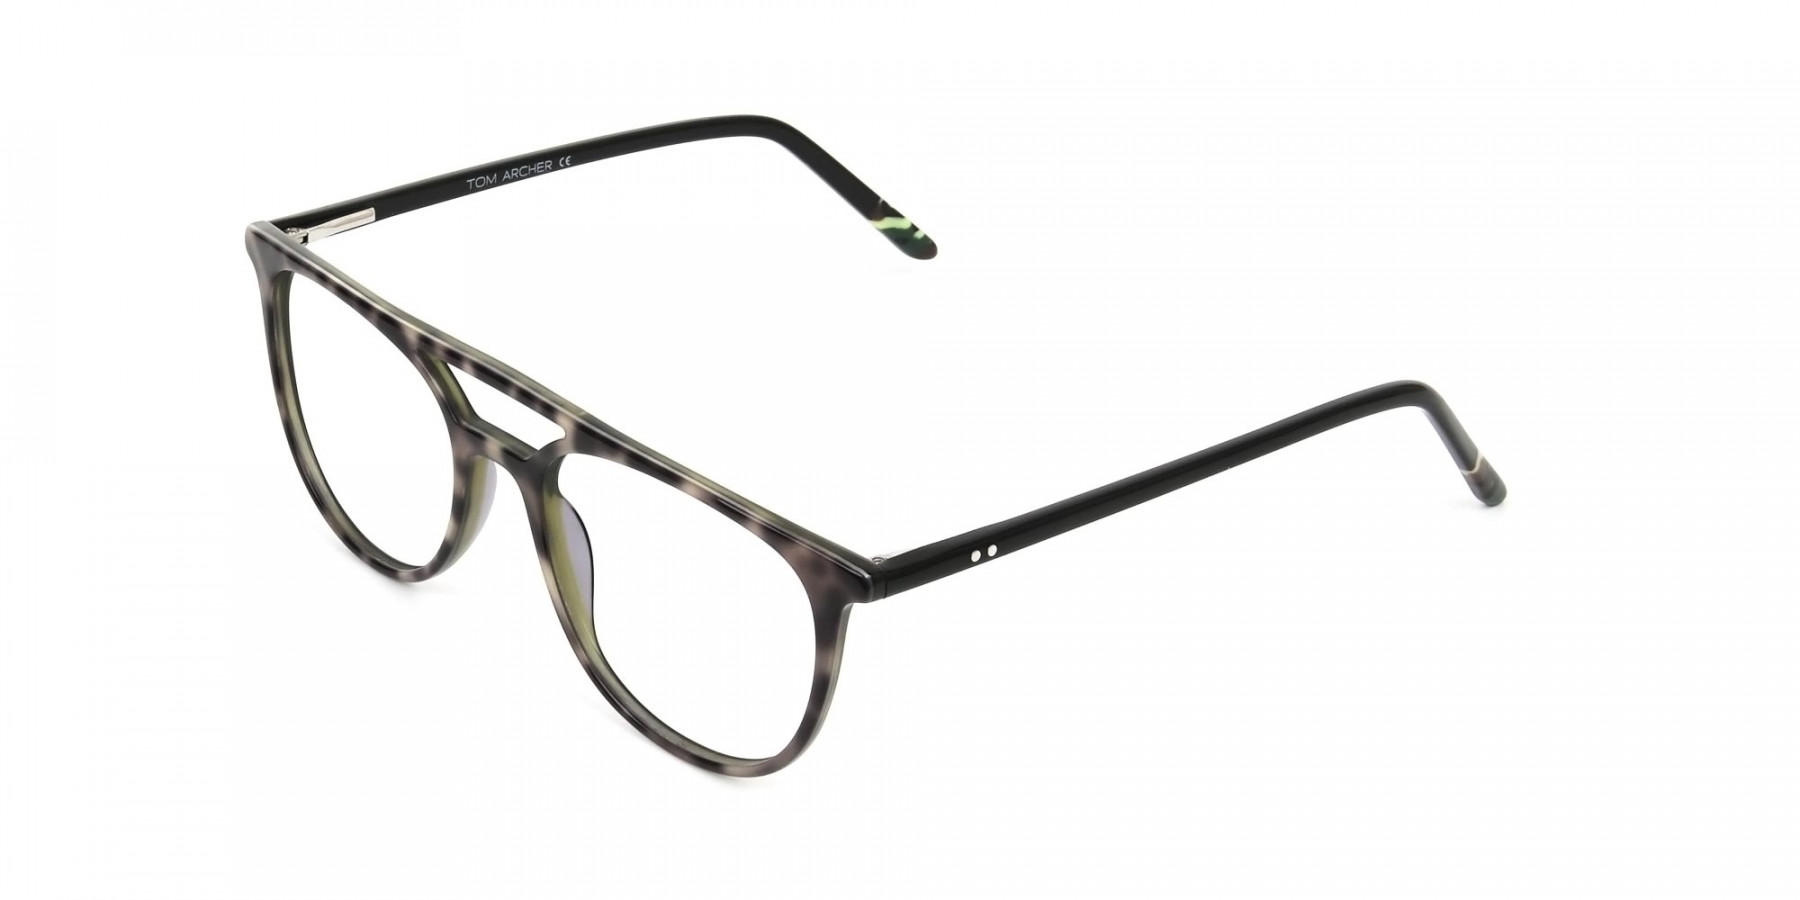 Jungle Green & Grey Tortoise Aviator Spectacles - 1